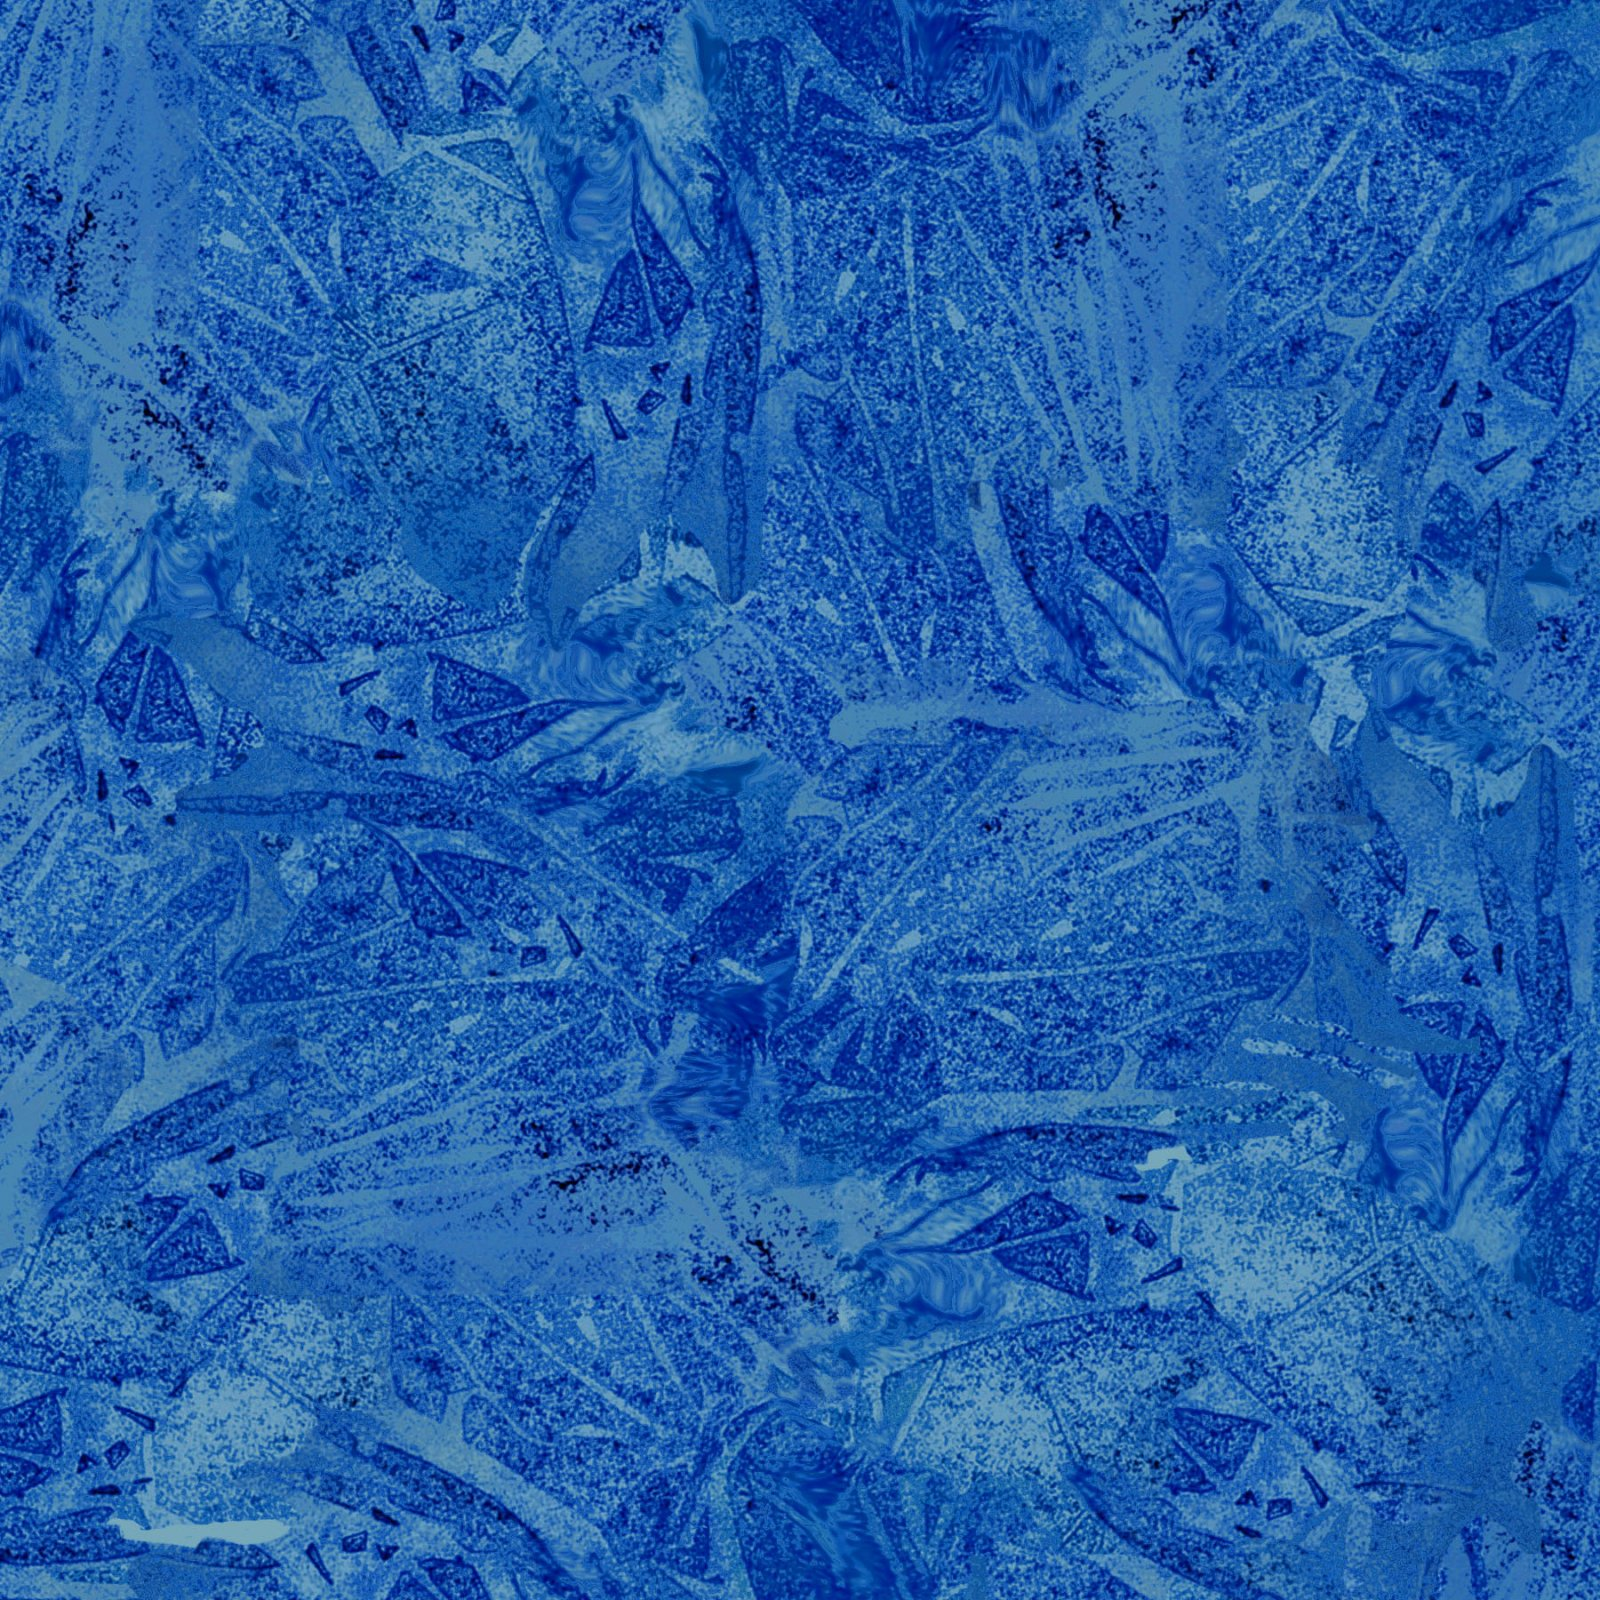 FRAC-4123 BT - FRACTURE BY TERESA ASCONE BLUE TEAL